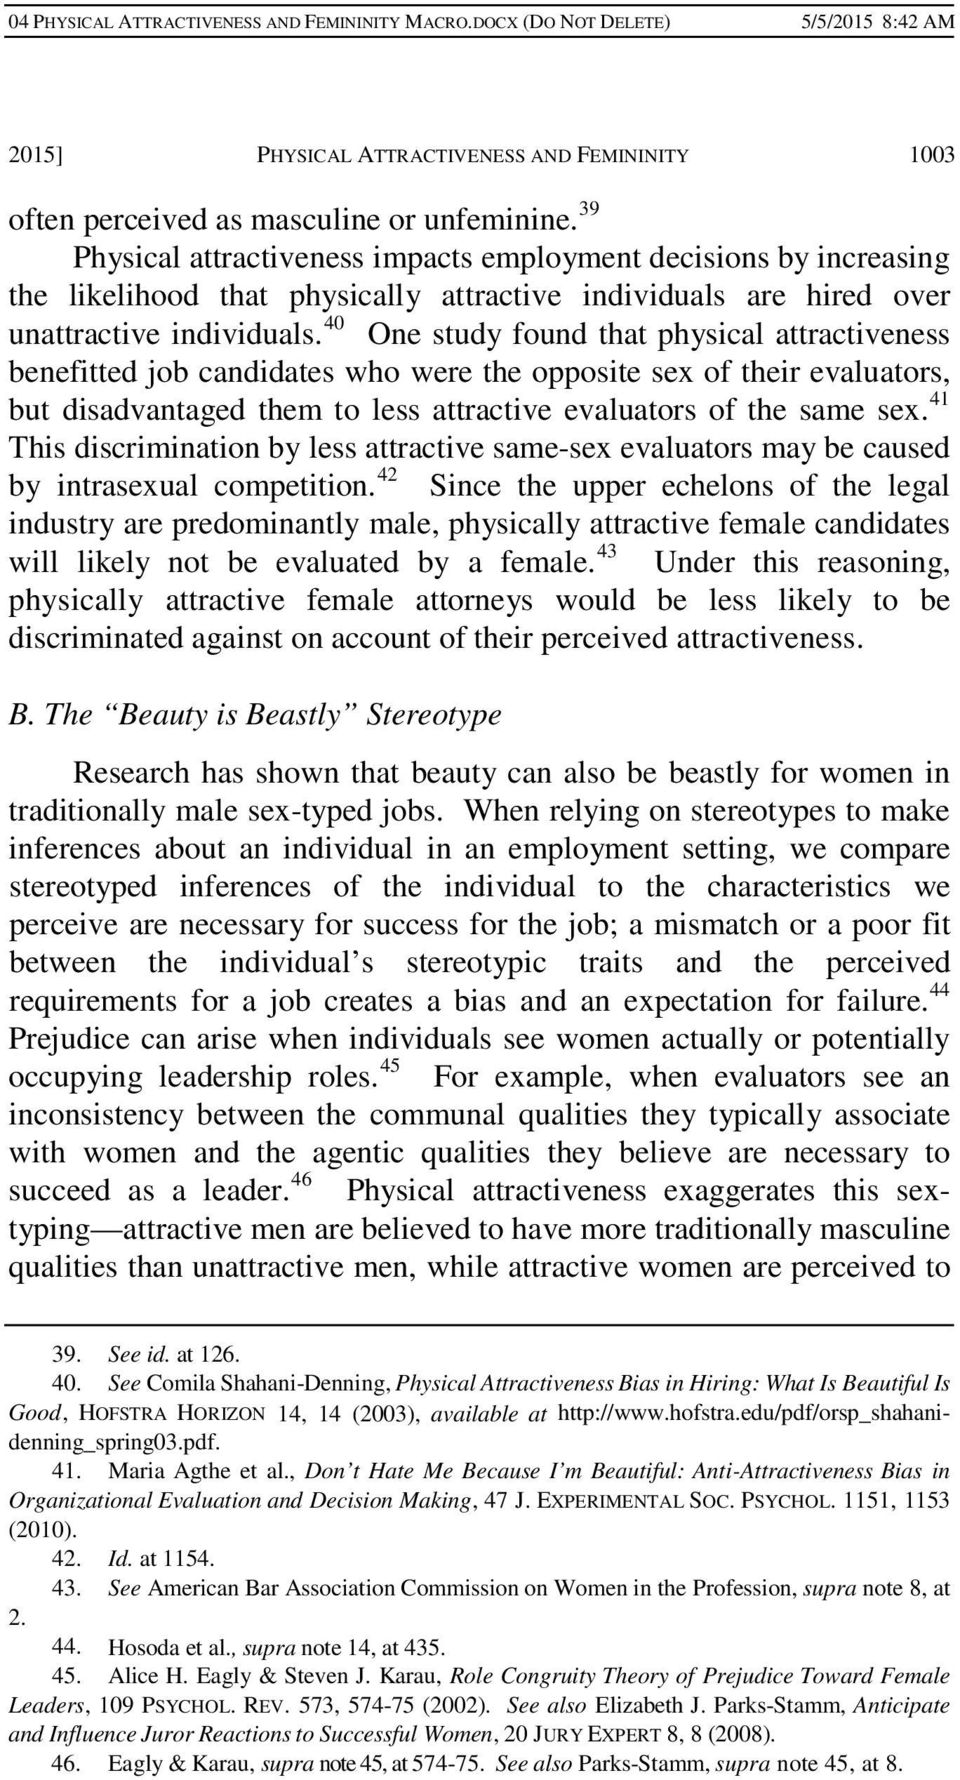 40 One study found that physical attractiveness benefitted job candidates who were the opposite sex of their evaluators, but disadvantaged them to less attractive evaluators of the same sex.